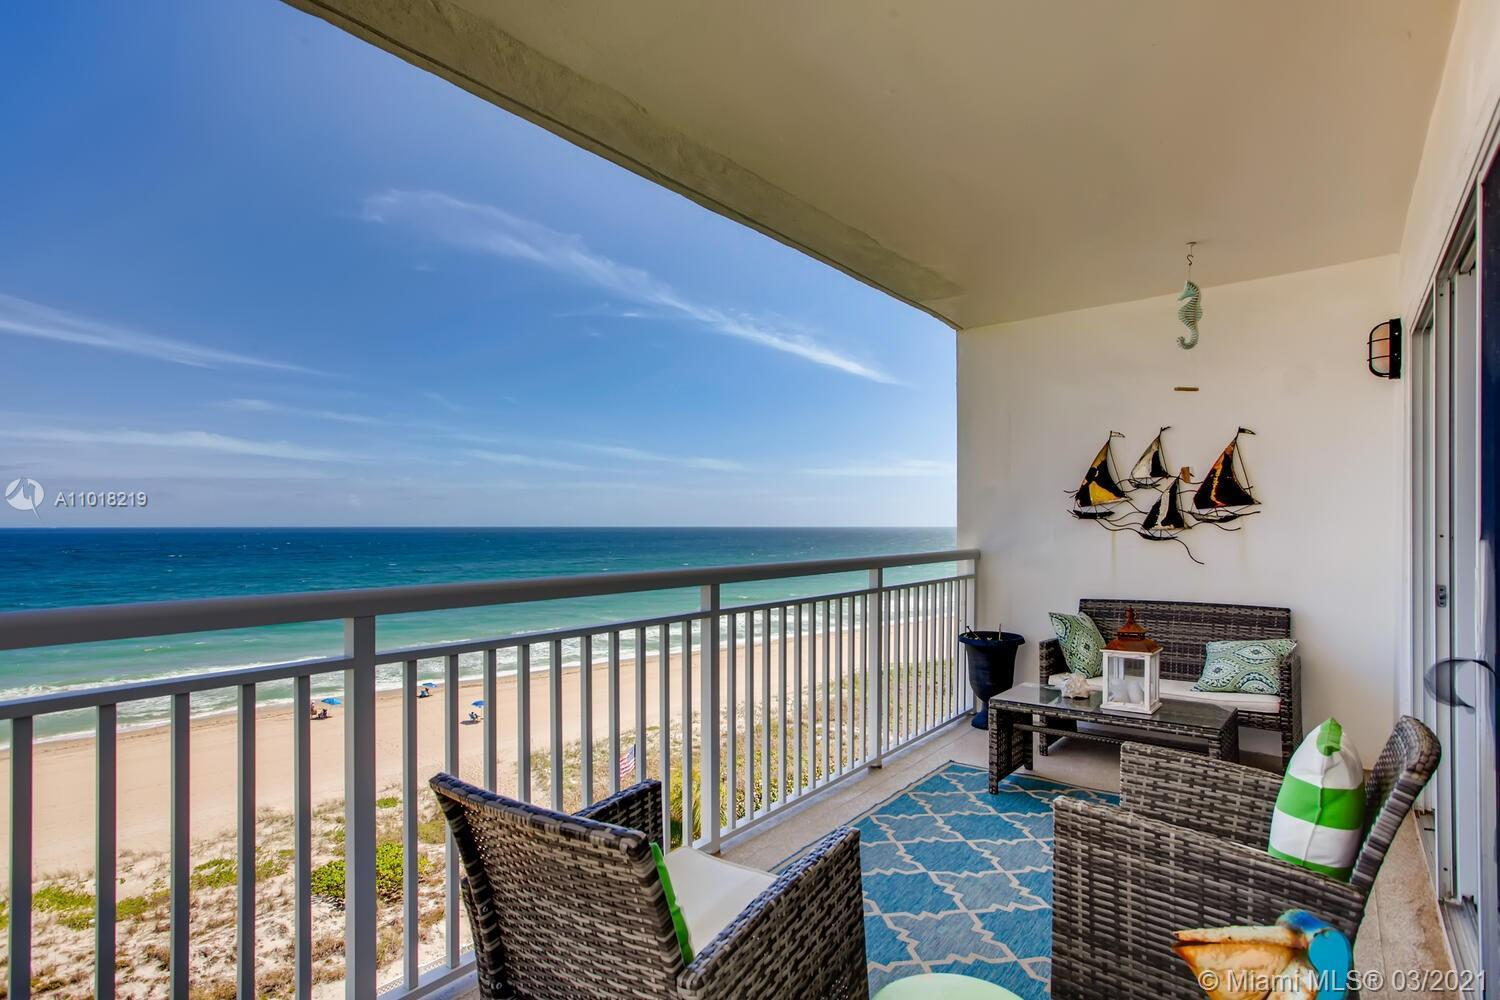 Beachfront condo with unrestricted ocean views! This bright and airy 2 bd / 2 ba unit awaits you wit